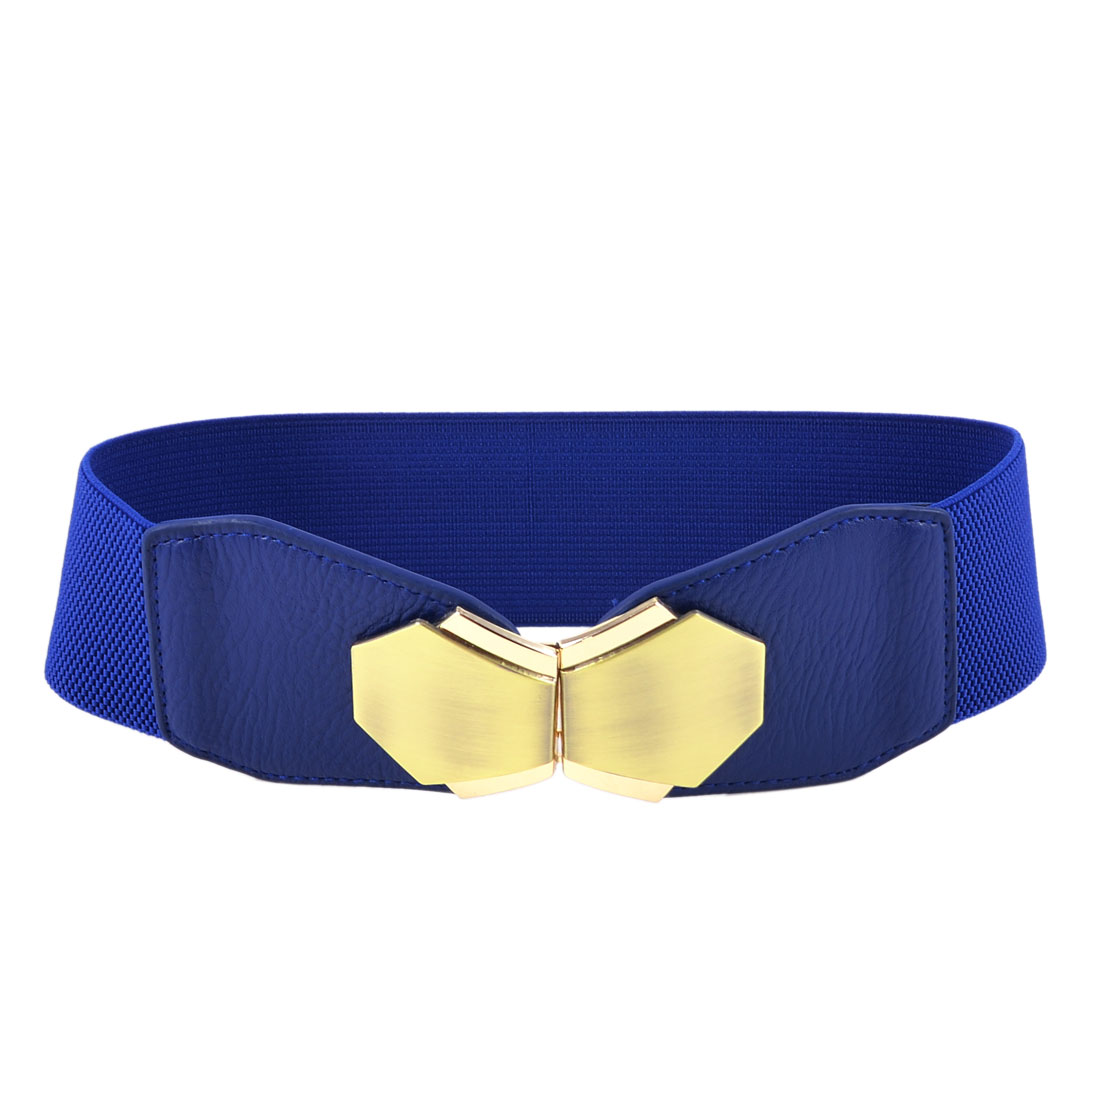 Blue Gold Tone Interlock Buckle Stretch Waistband Cinch Belt 6CM Width for Lady